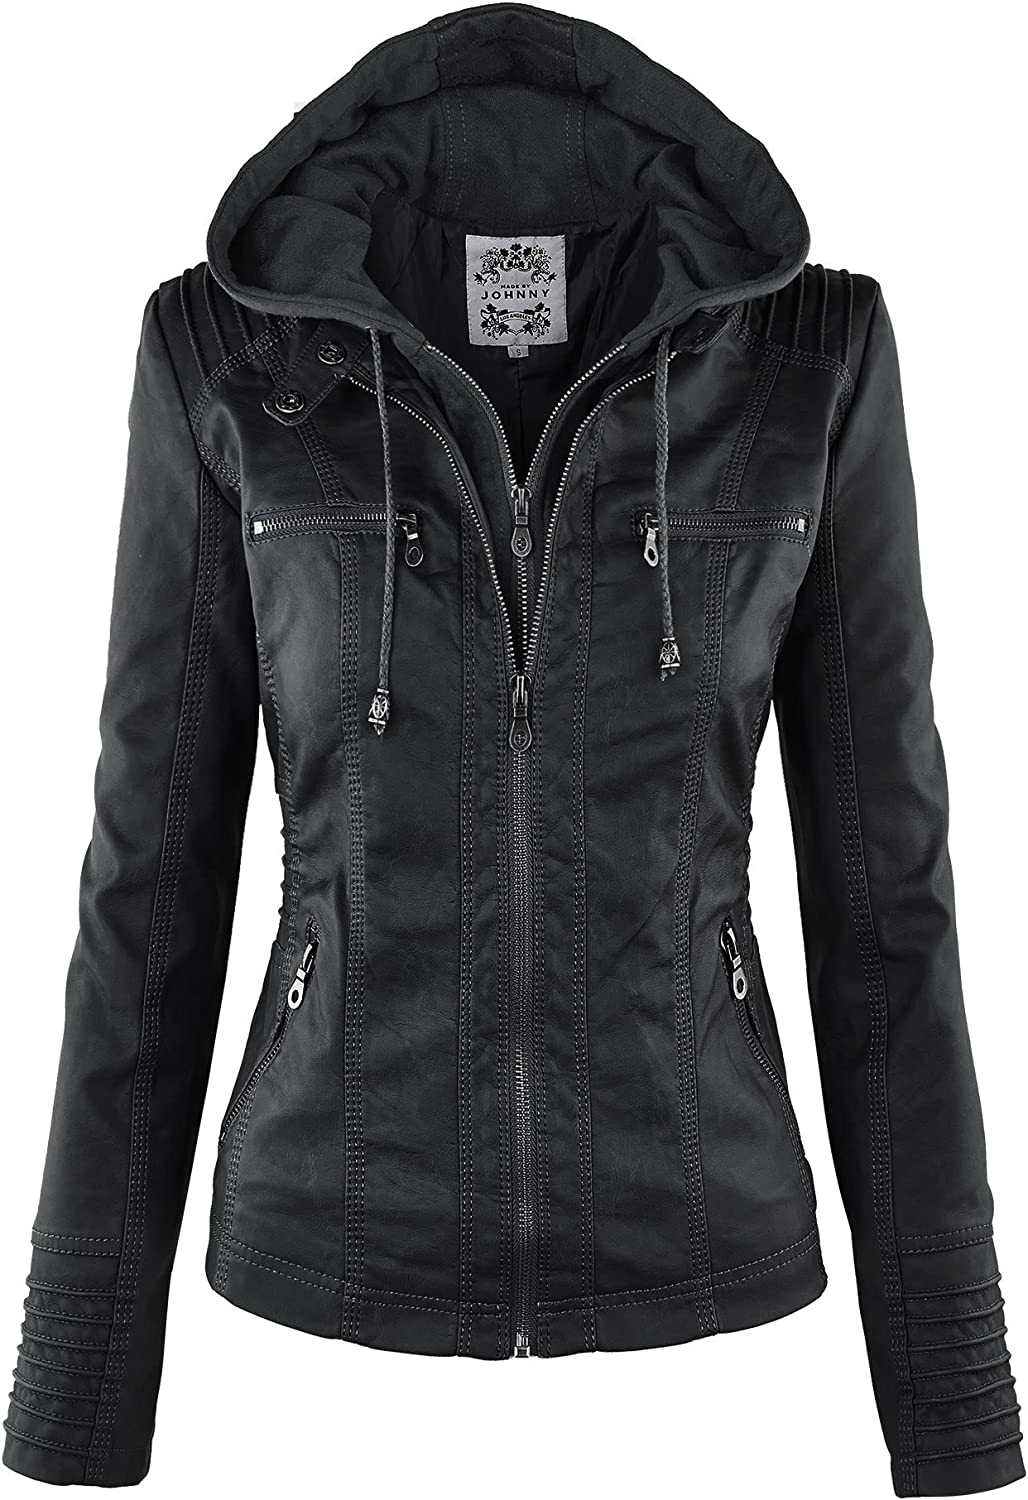 Made By Johnny MBJ Womens Faux Max 74% OFF Max 45% OFF Ho Leather Jacket Motorcycle with